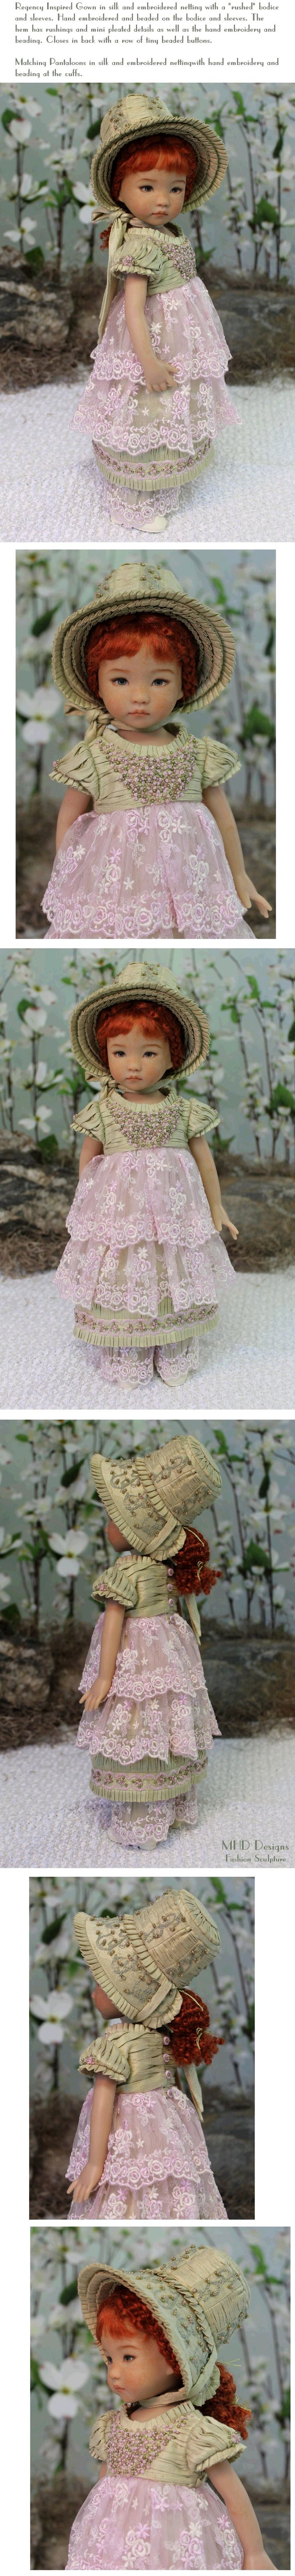 "MHD Designs ""Printemps Charmant"" OOAK for 14"" Dianna Effner's Little Darlings, SOLD via eBay 2/28/14 $1,500.00"